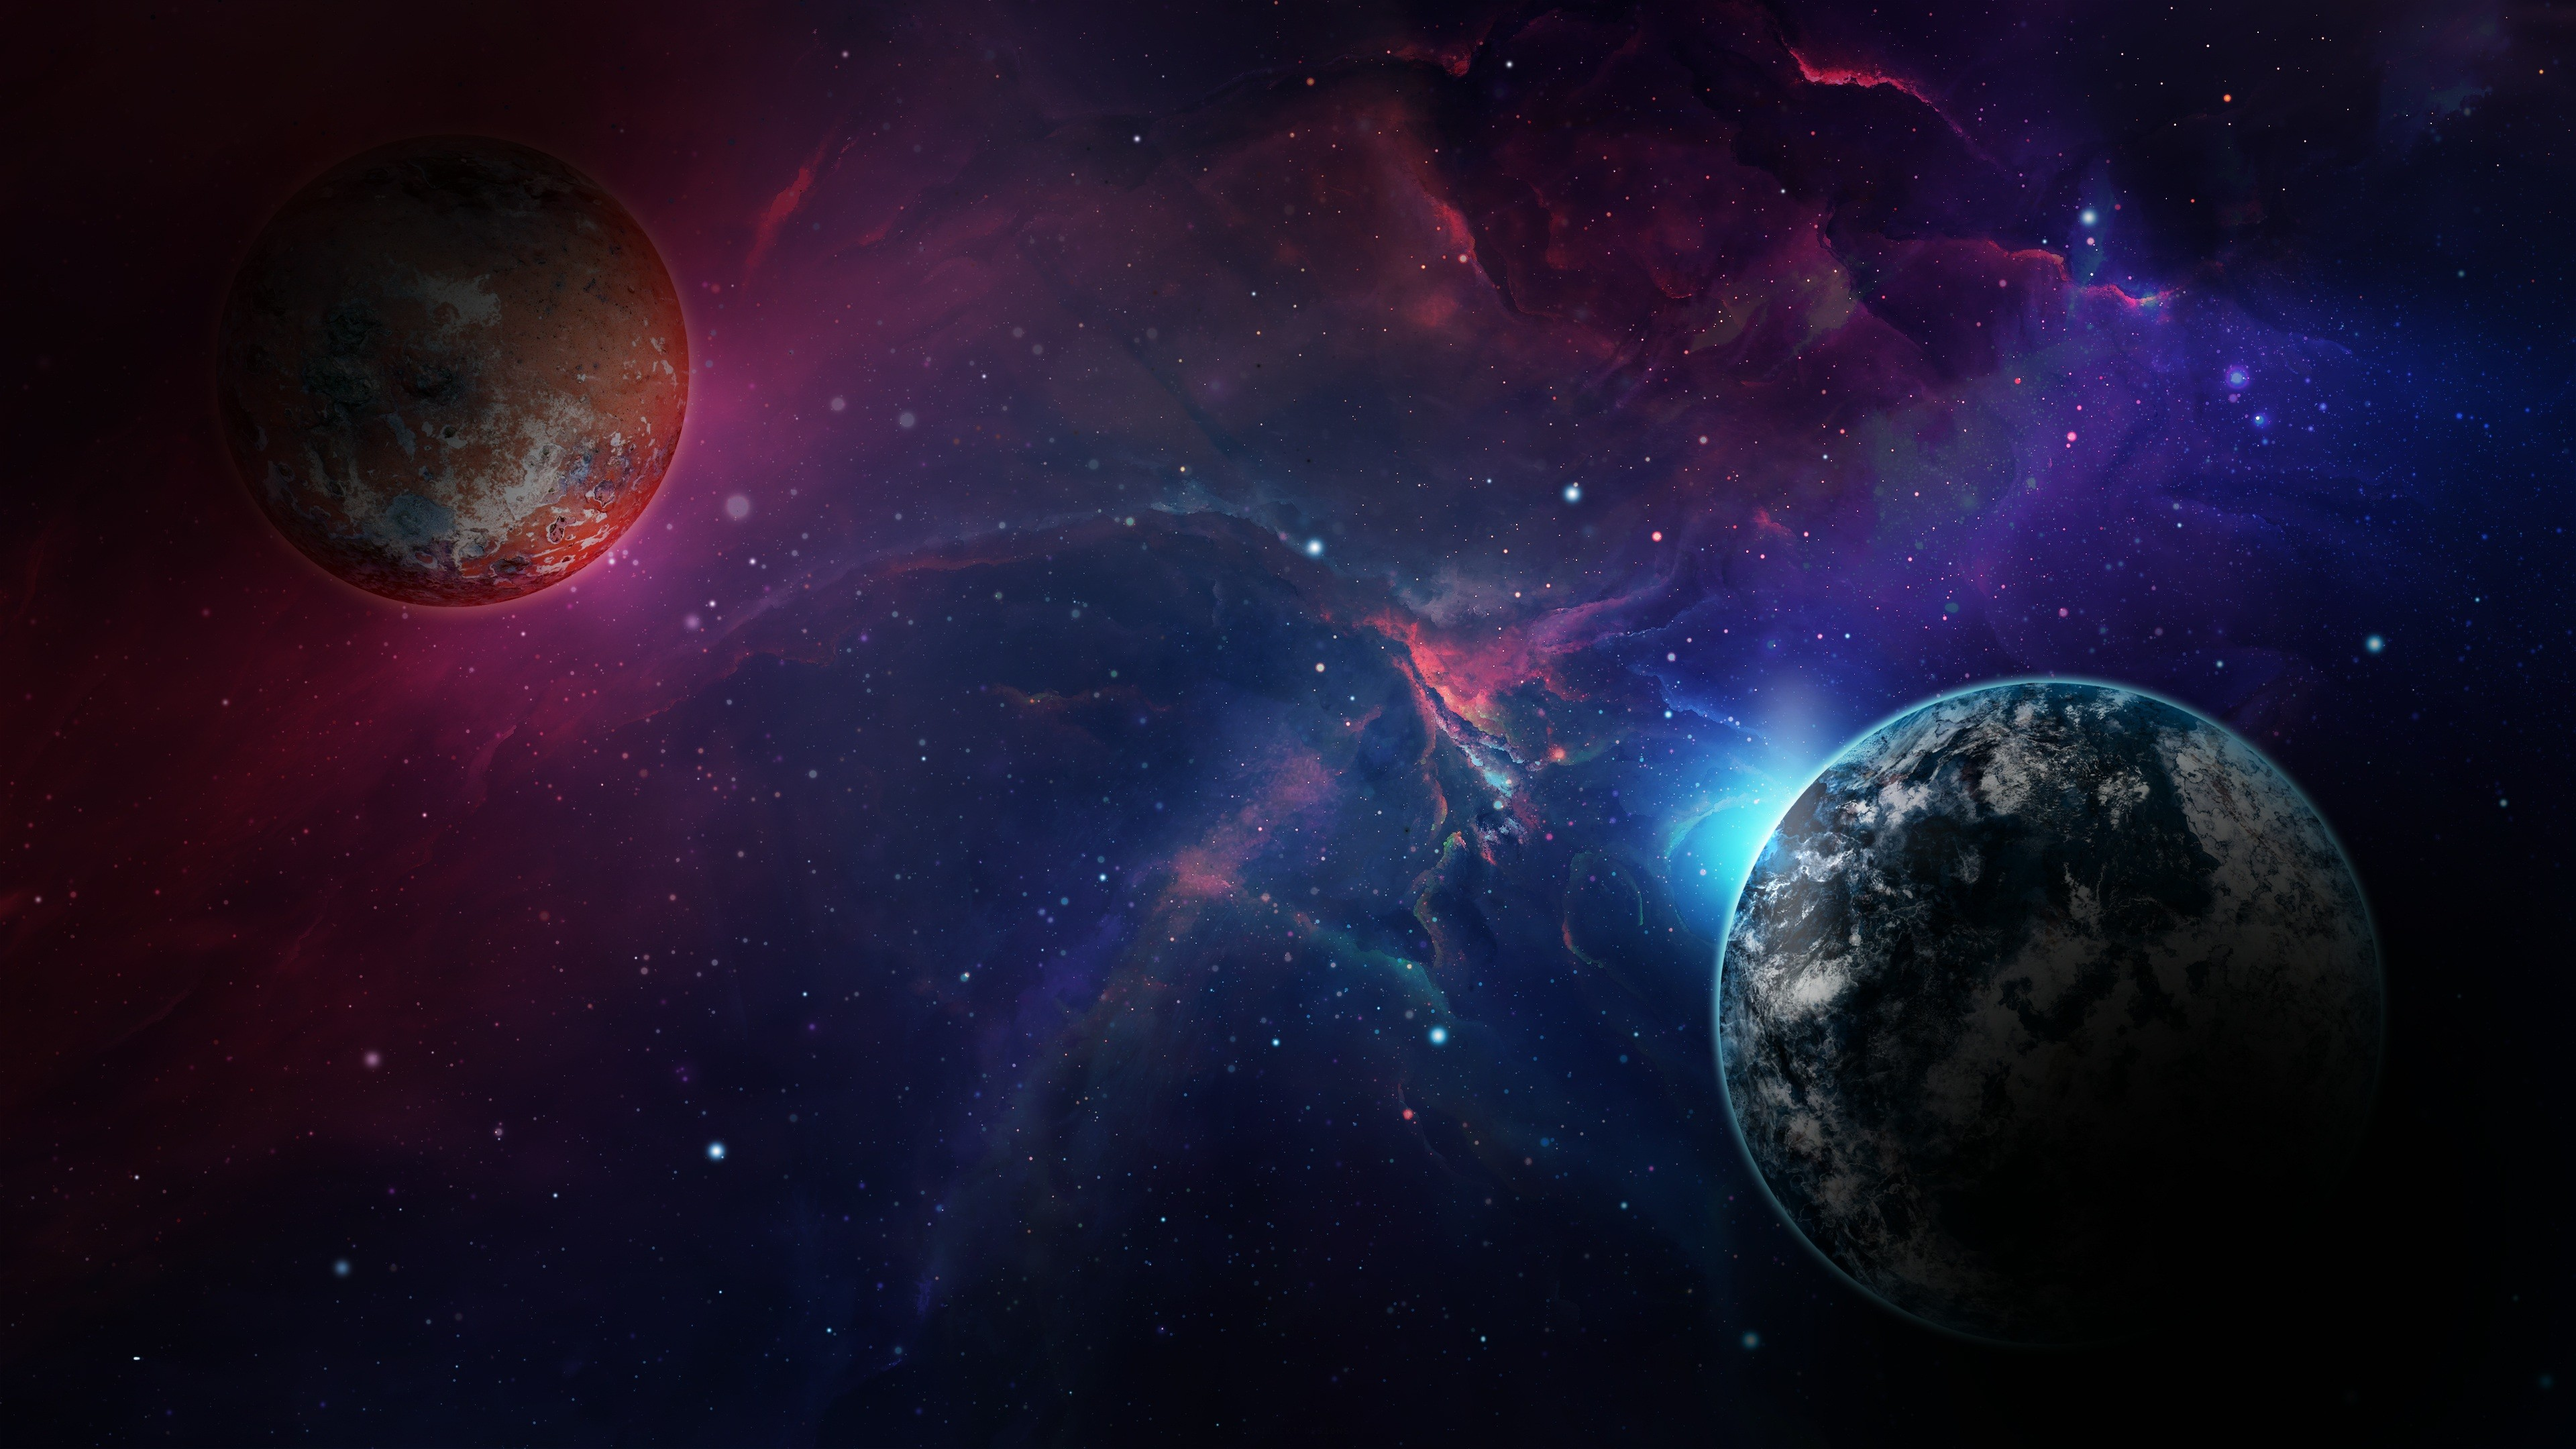 Galaxy Space Wallpaper 4k Apk Download: Wallpaper Space, Galaxy, Planet, 4k, Space #17043